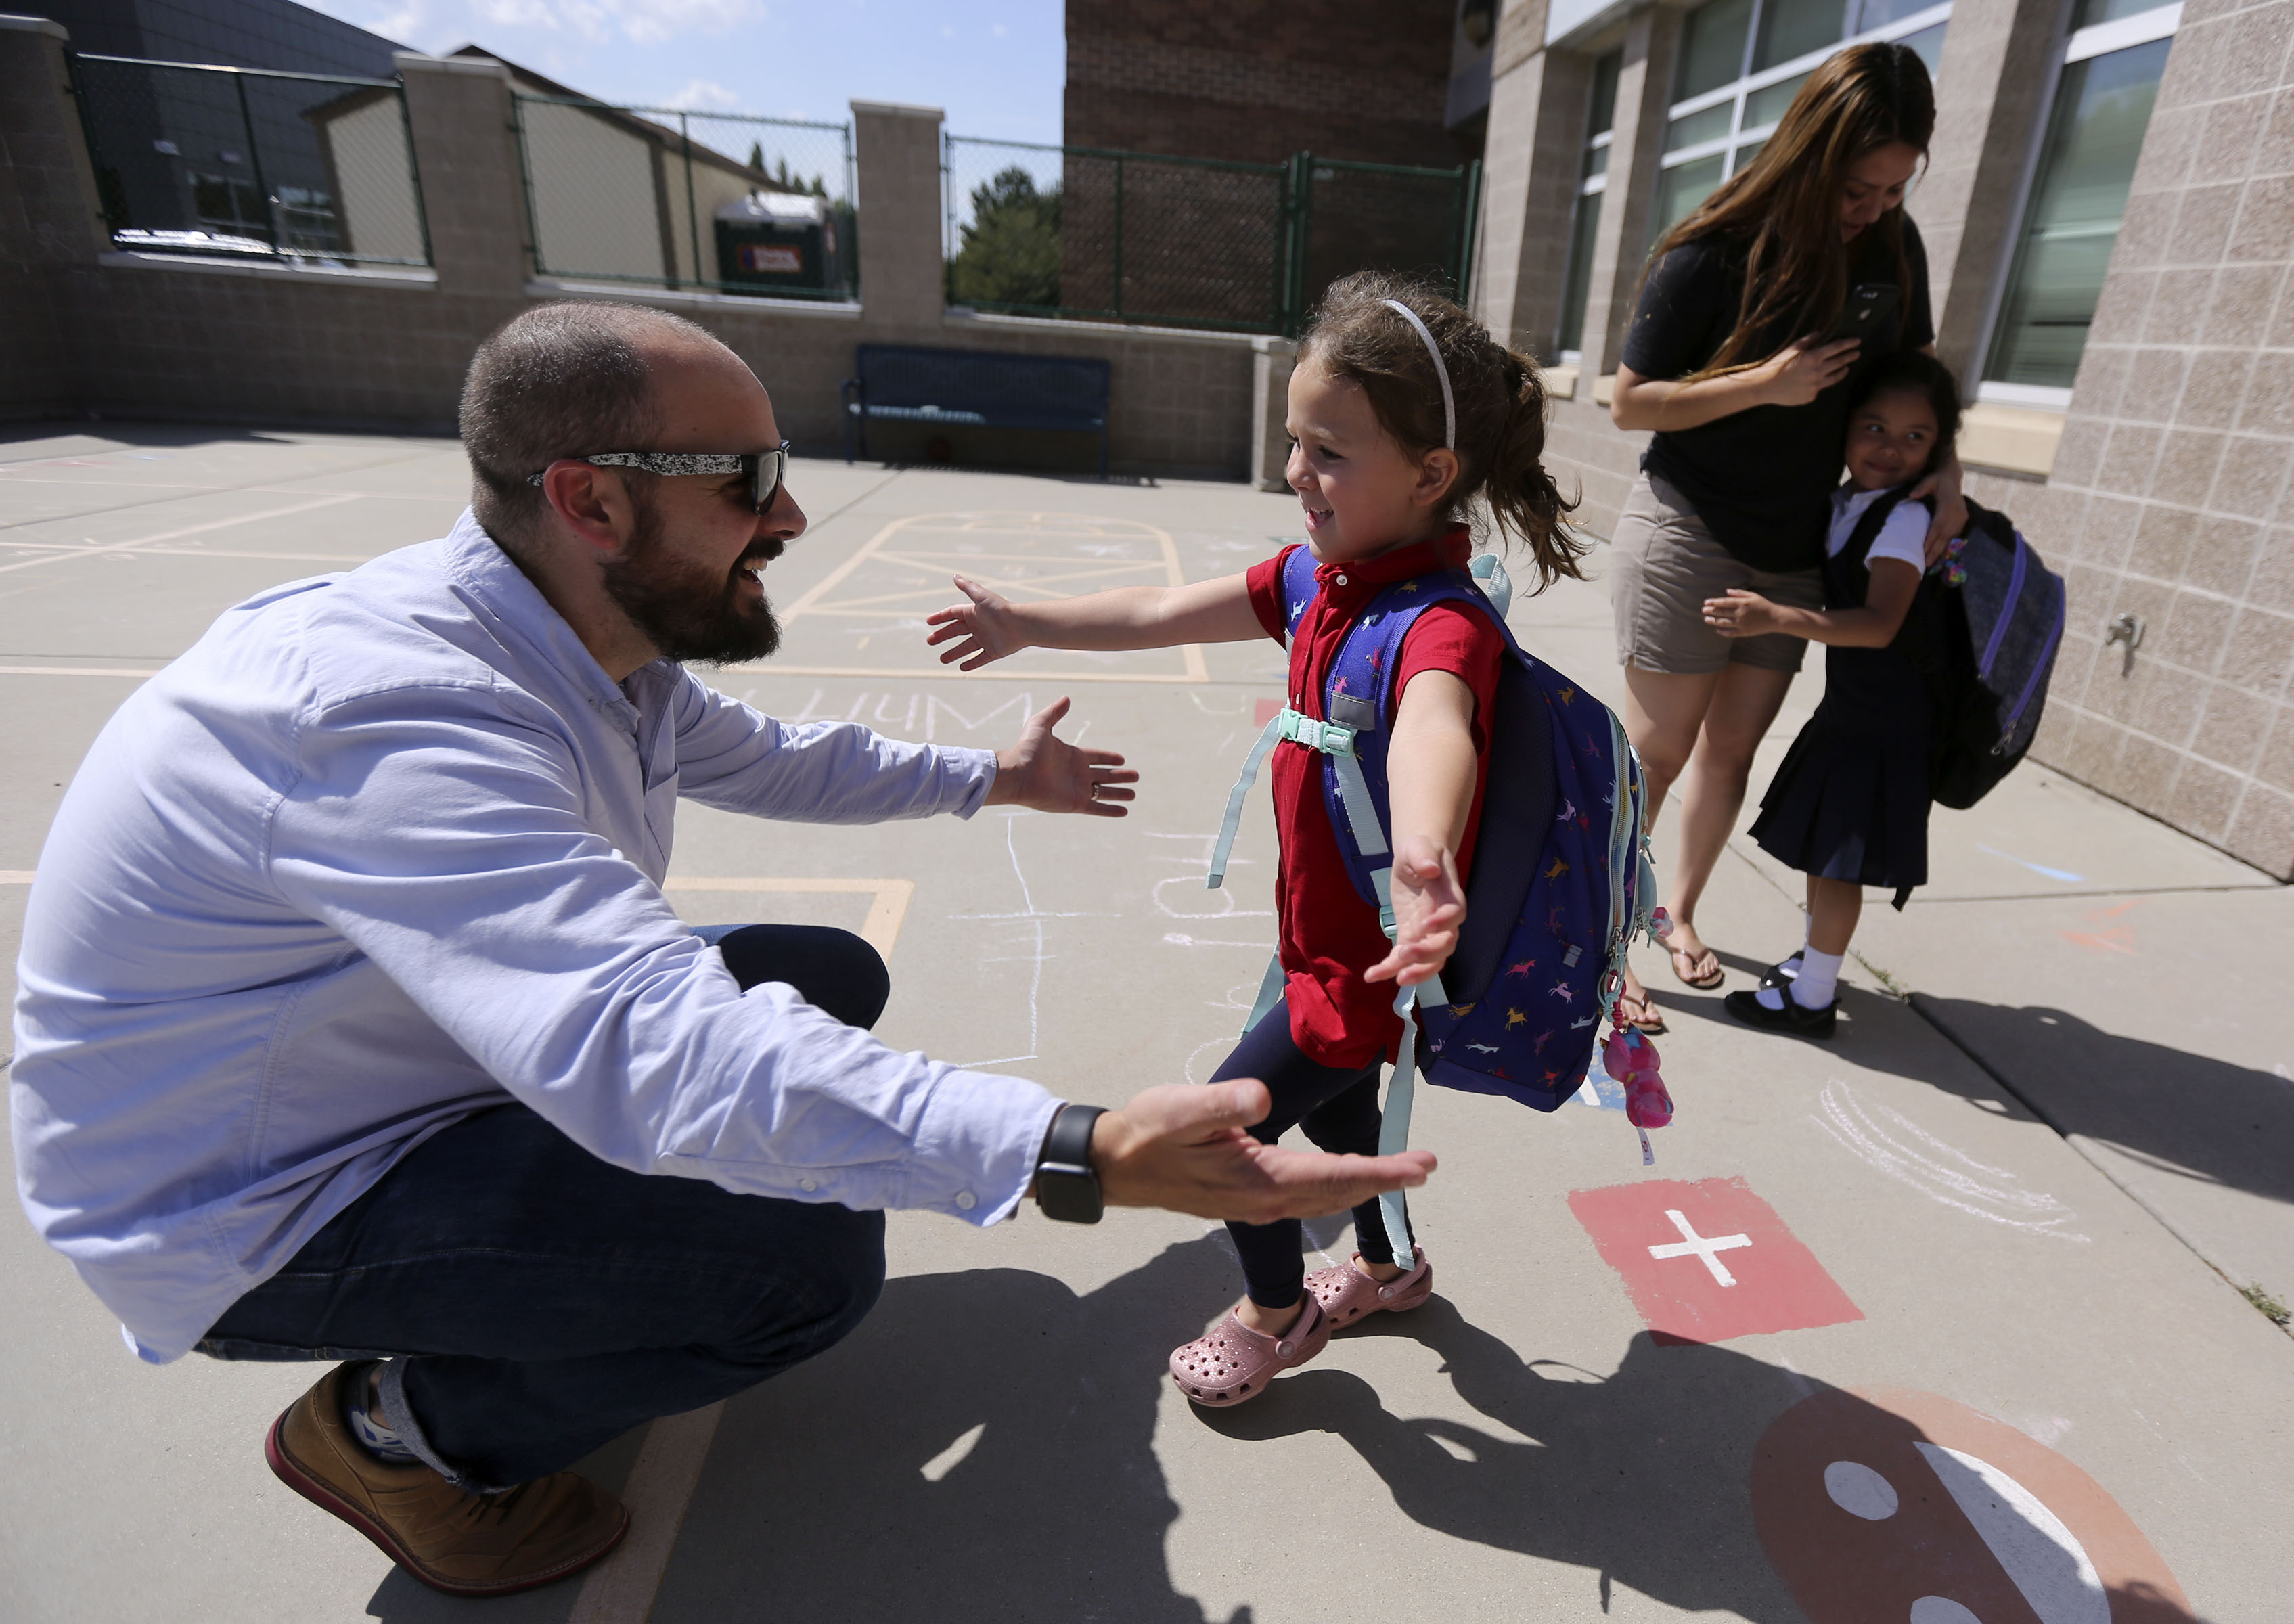 Chris Conard picks up his daughter Hazel Conard from kindergarten at Whittier Elementary School in Salt Lake City before dropping her off at Makiko's Daycare Center in Murray on Thursday, Sept. 5, 2019.